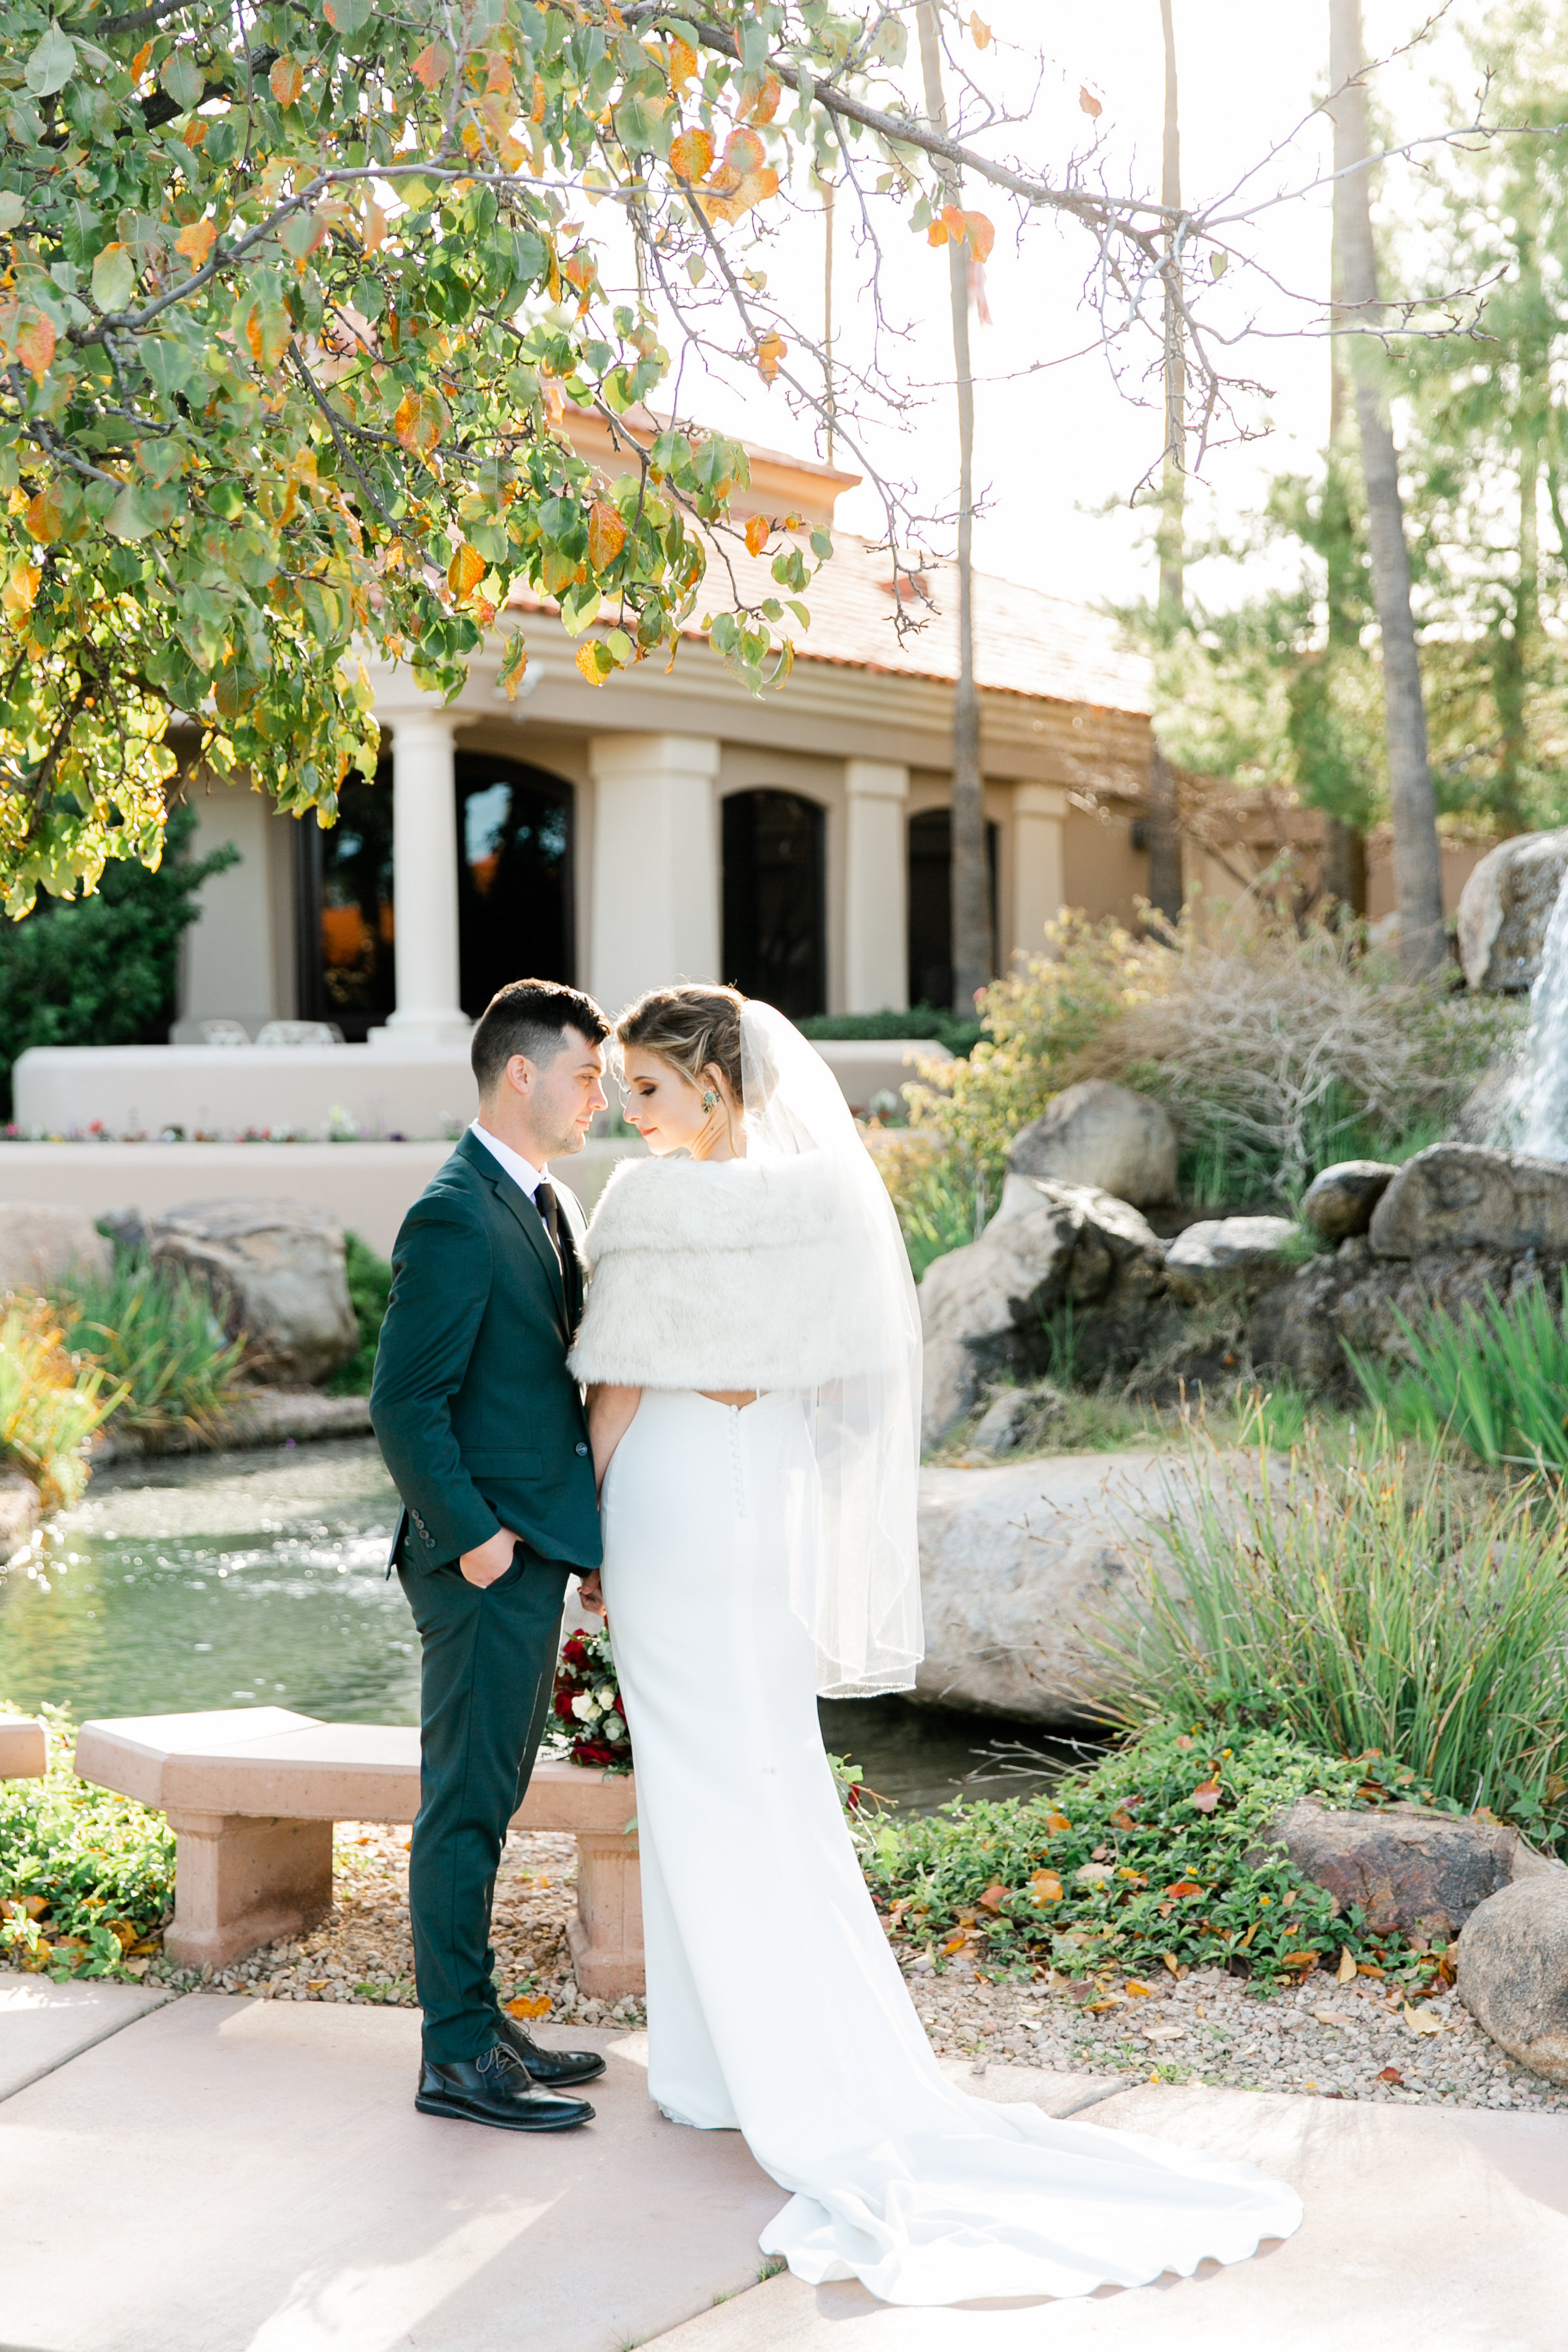 Karlie Colleen Photography - Gilbert Arizona Wedding - Val Vista Lakes - Brynne & Josh-465